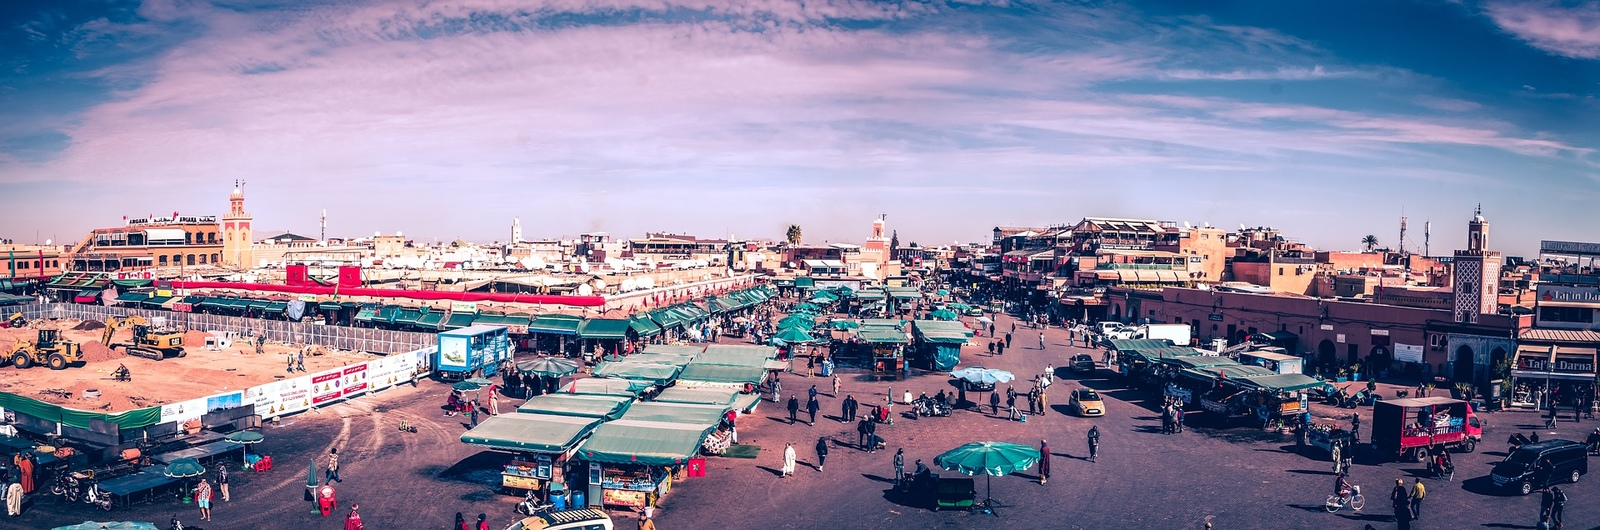 marrakesh city header